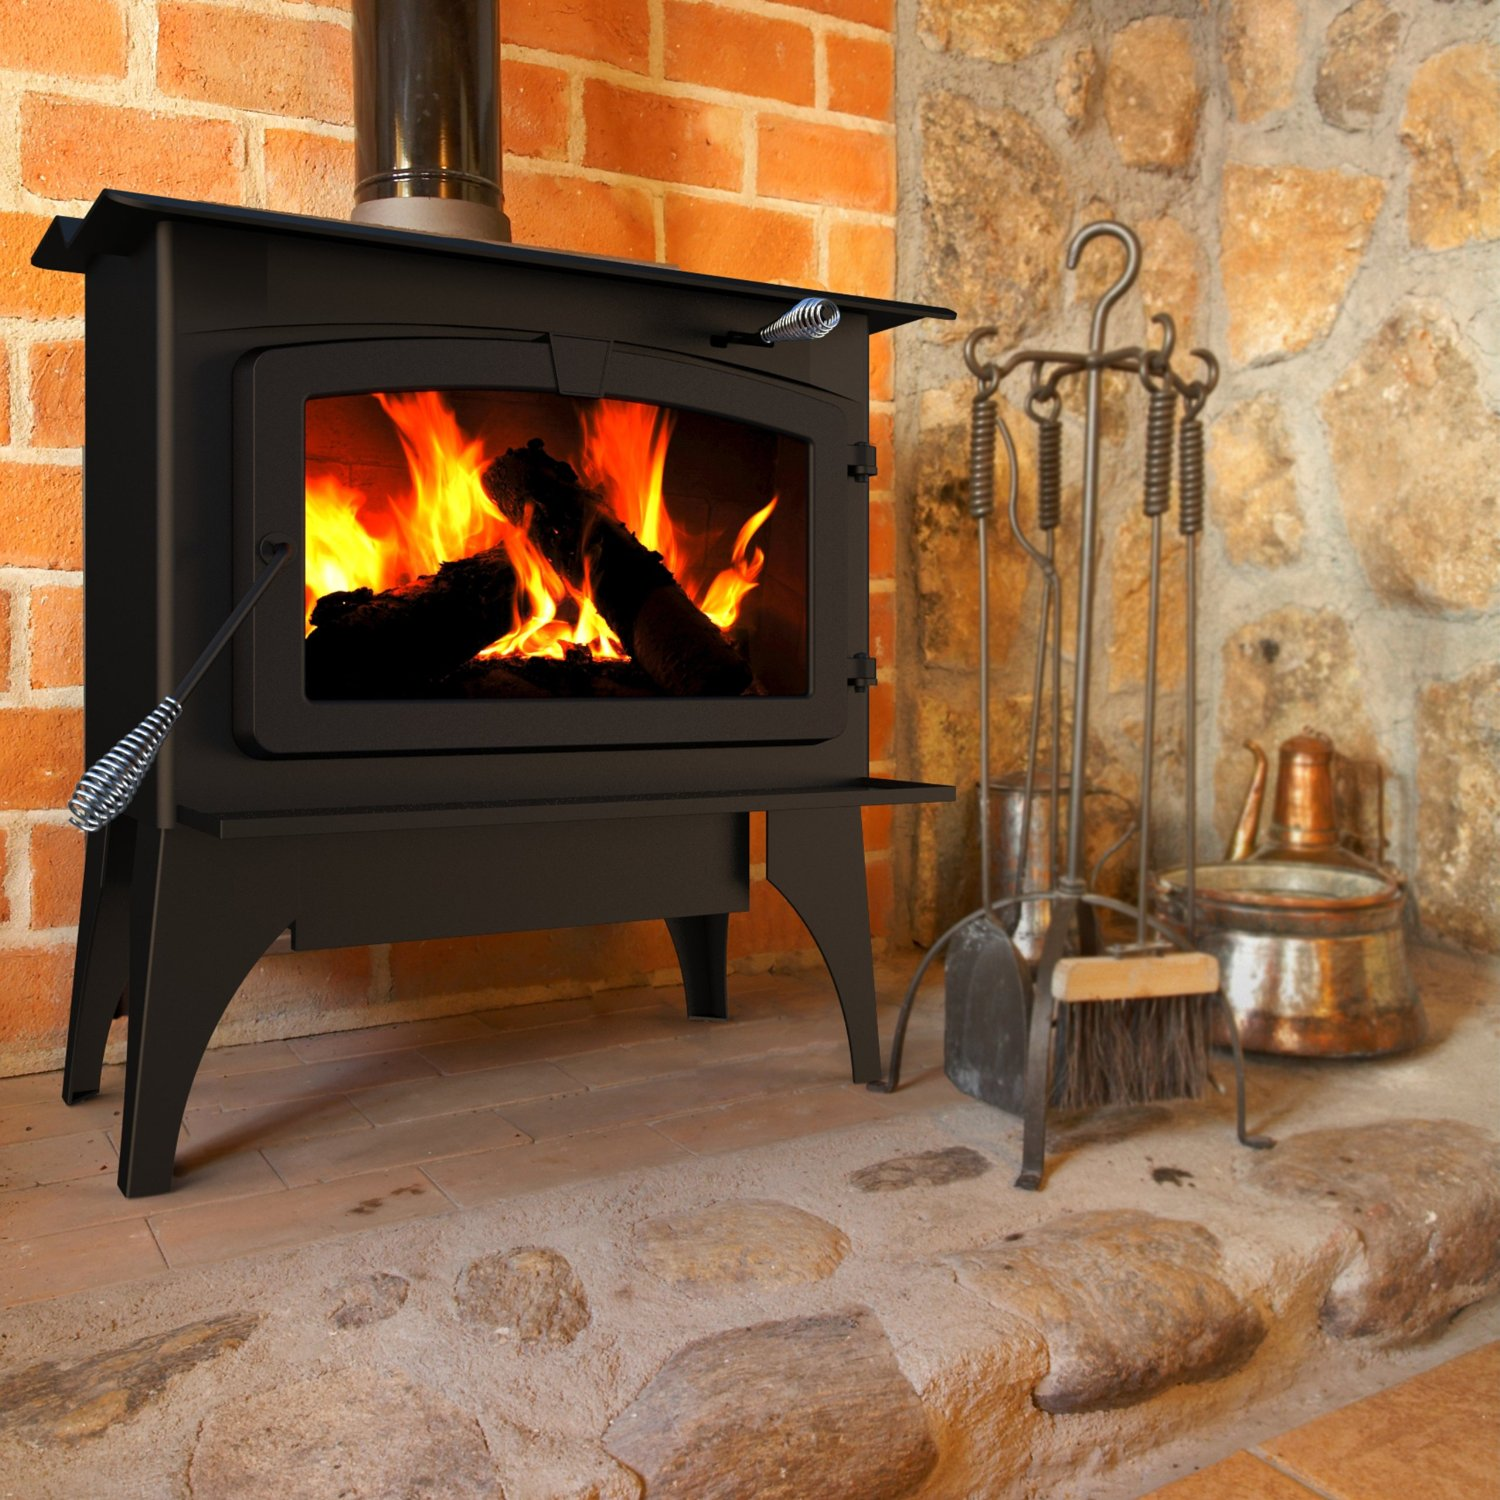 wood burning stove a safe heating alternative